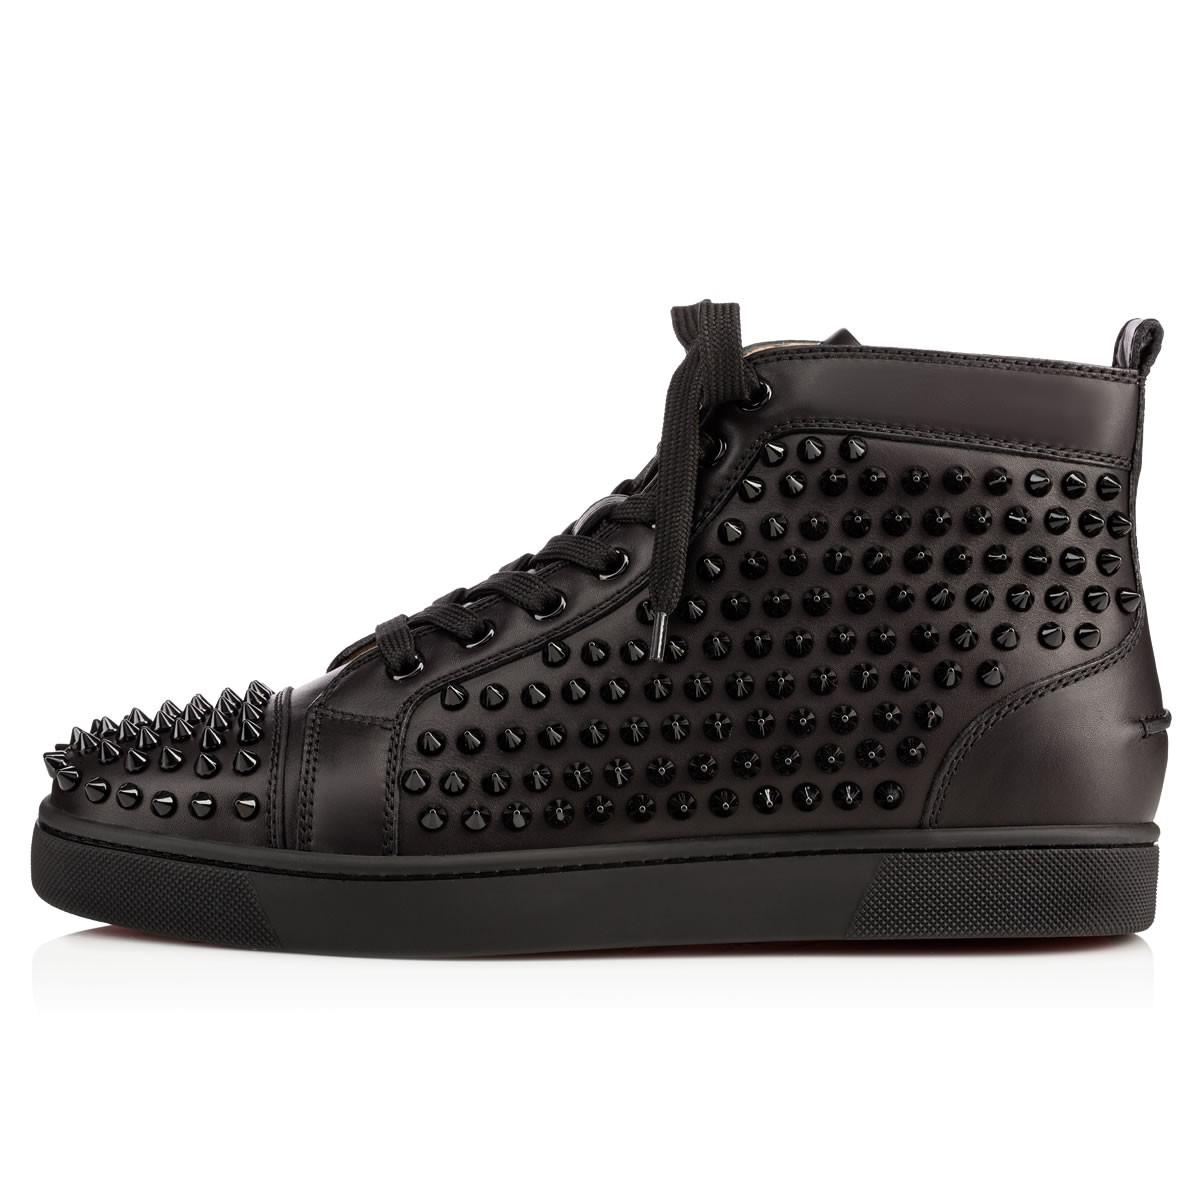 dd8a9c8cc139 Christian Louboutin - Black Louis Spikes Studded High-Top Sneakers for Men  - Lyst. View fullscreen